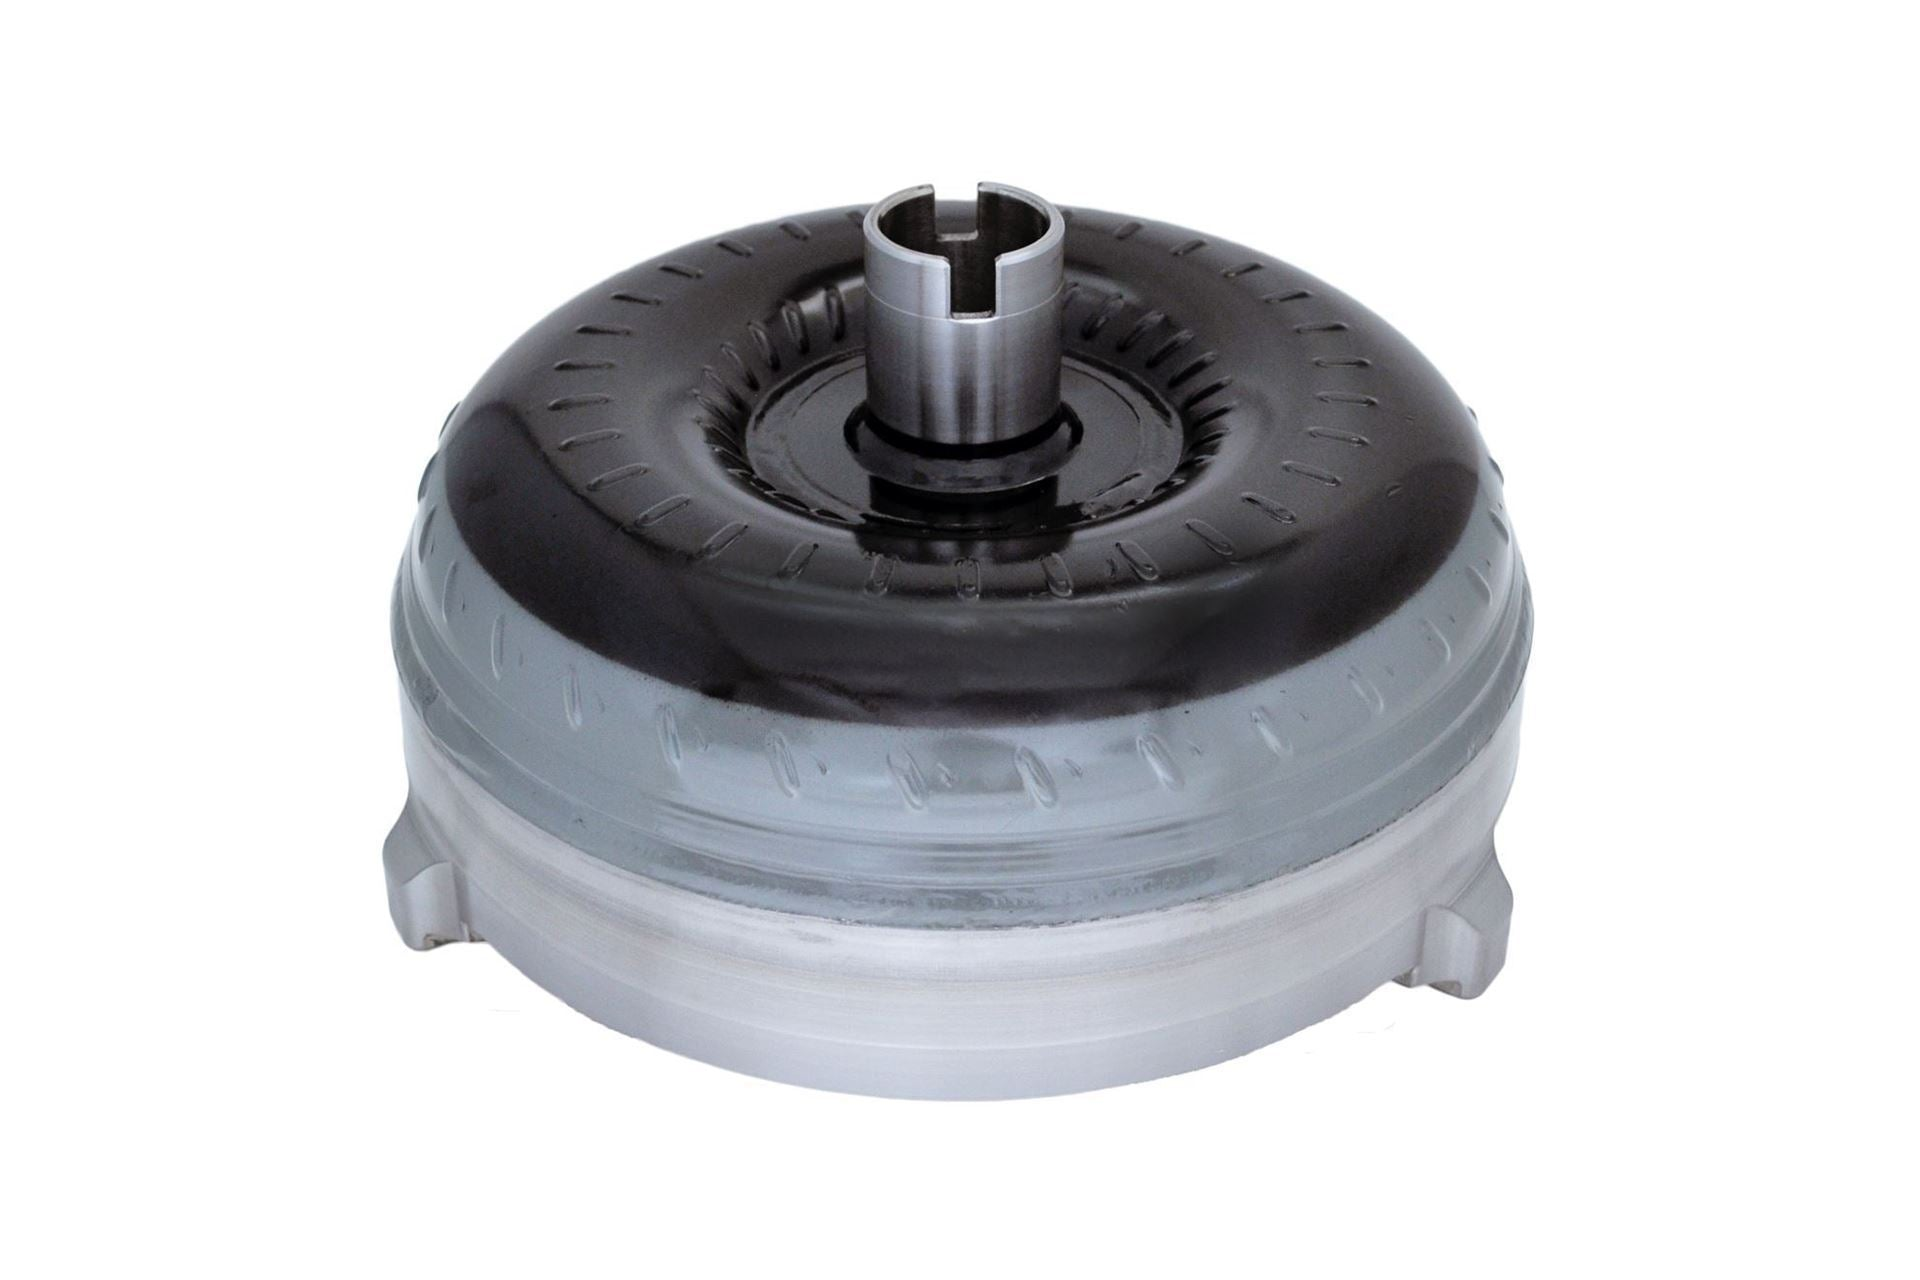 Circle D 245mm Billet Pro Series Torque Converter - 8L90e